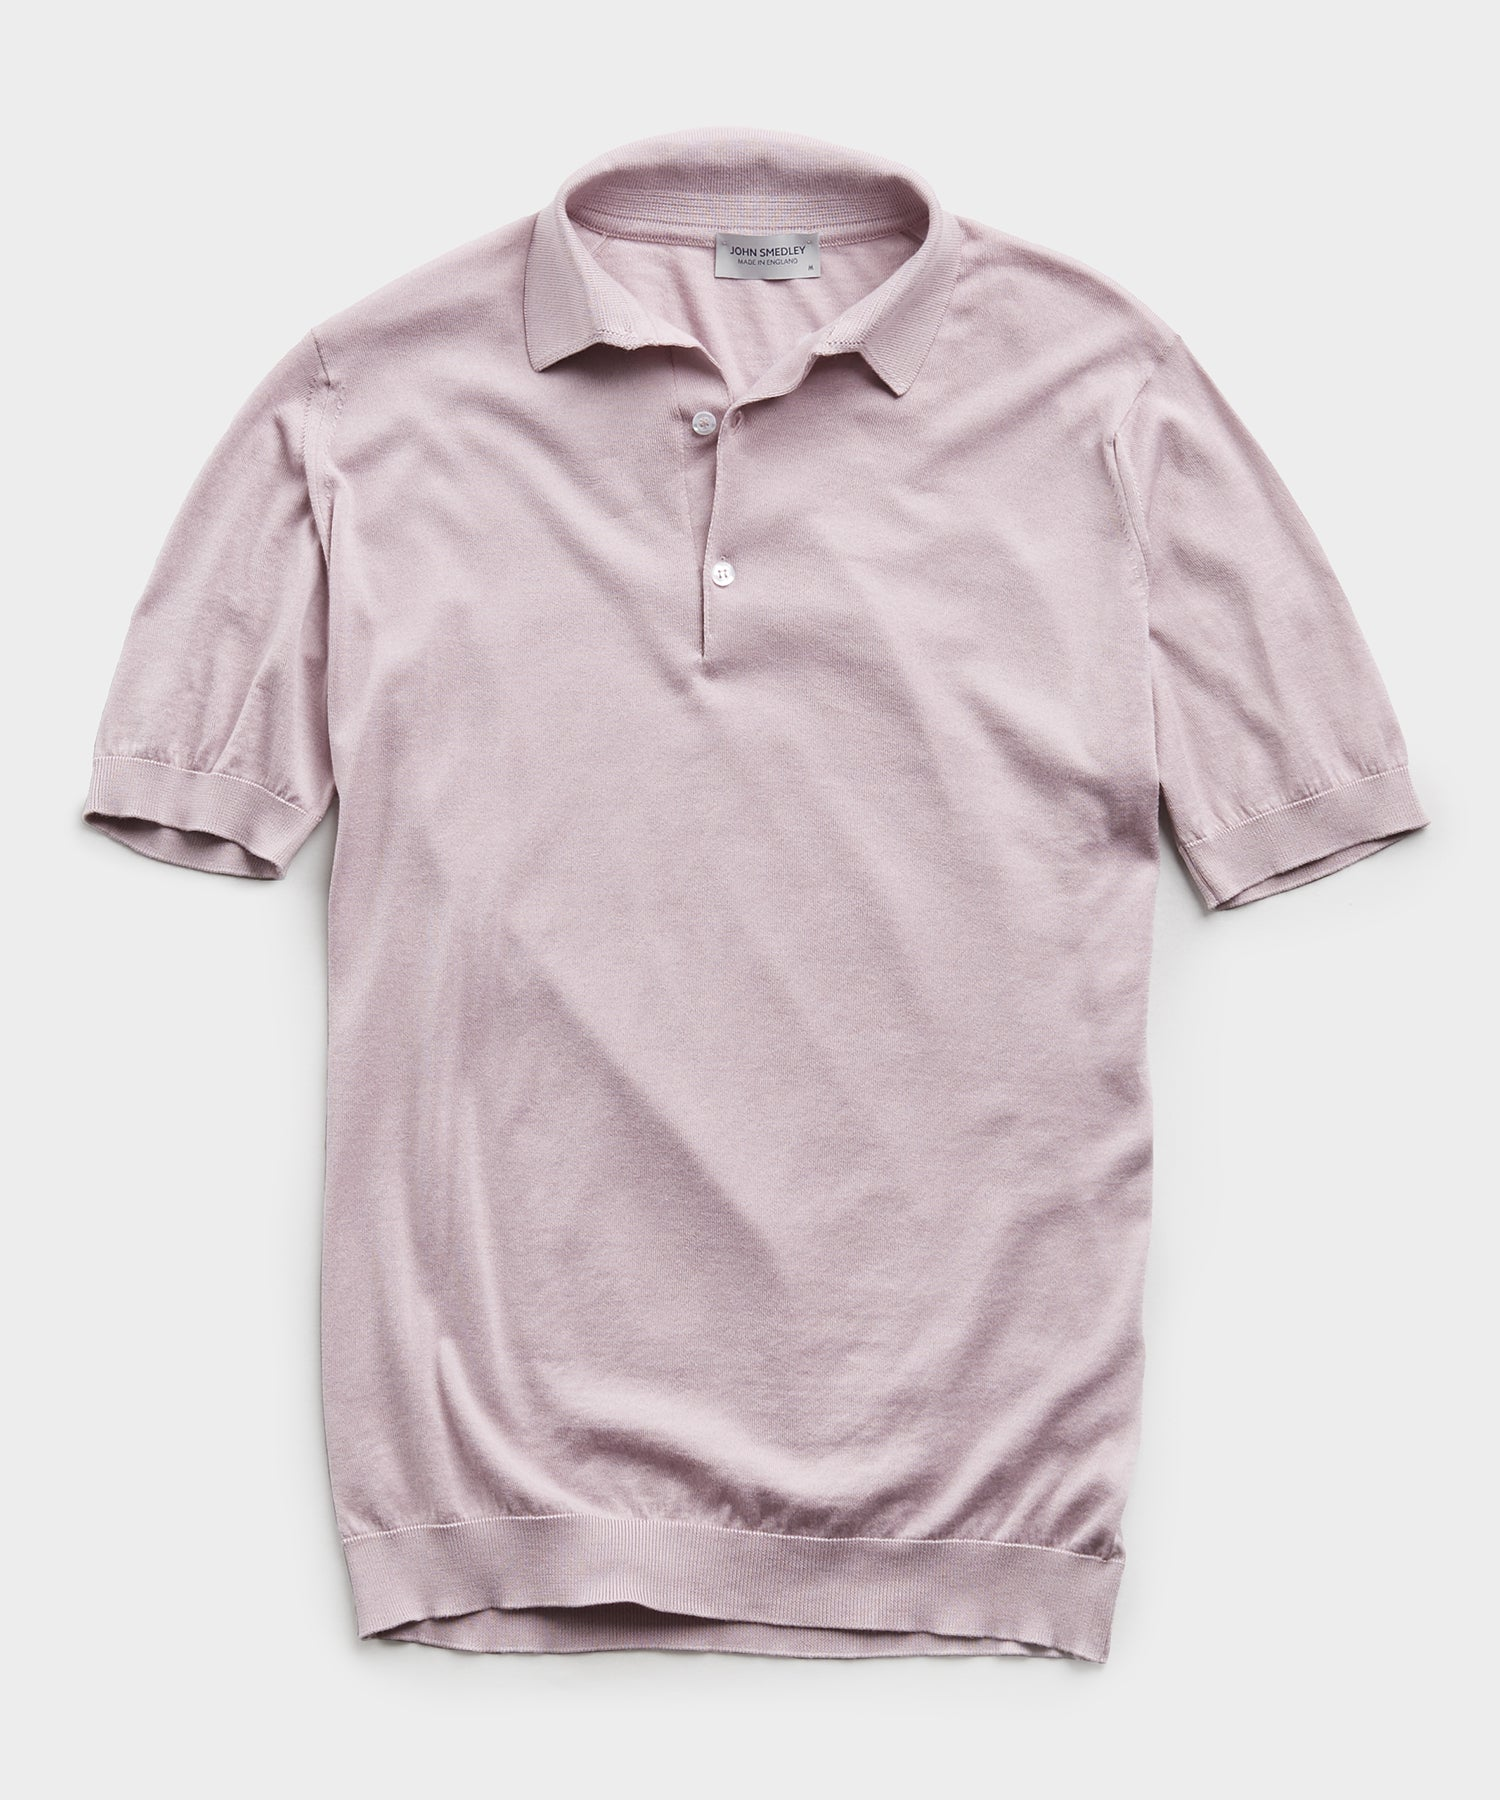 John Smedley Adrian Sea Island Cotton Polo in Pink Dawn